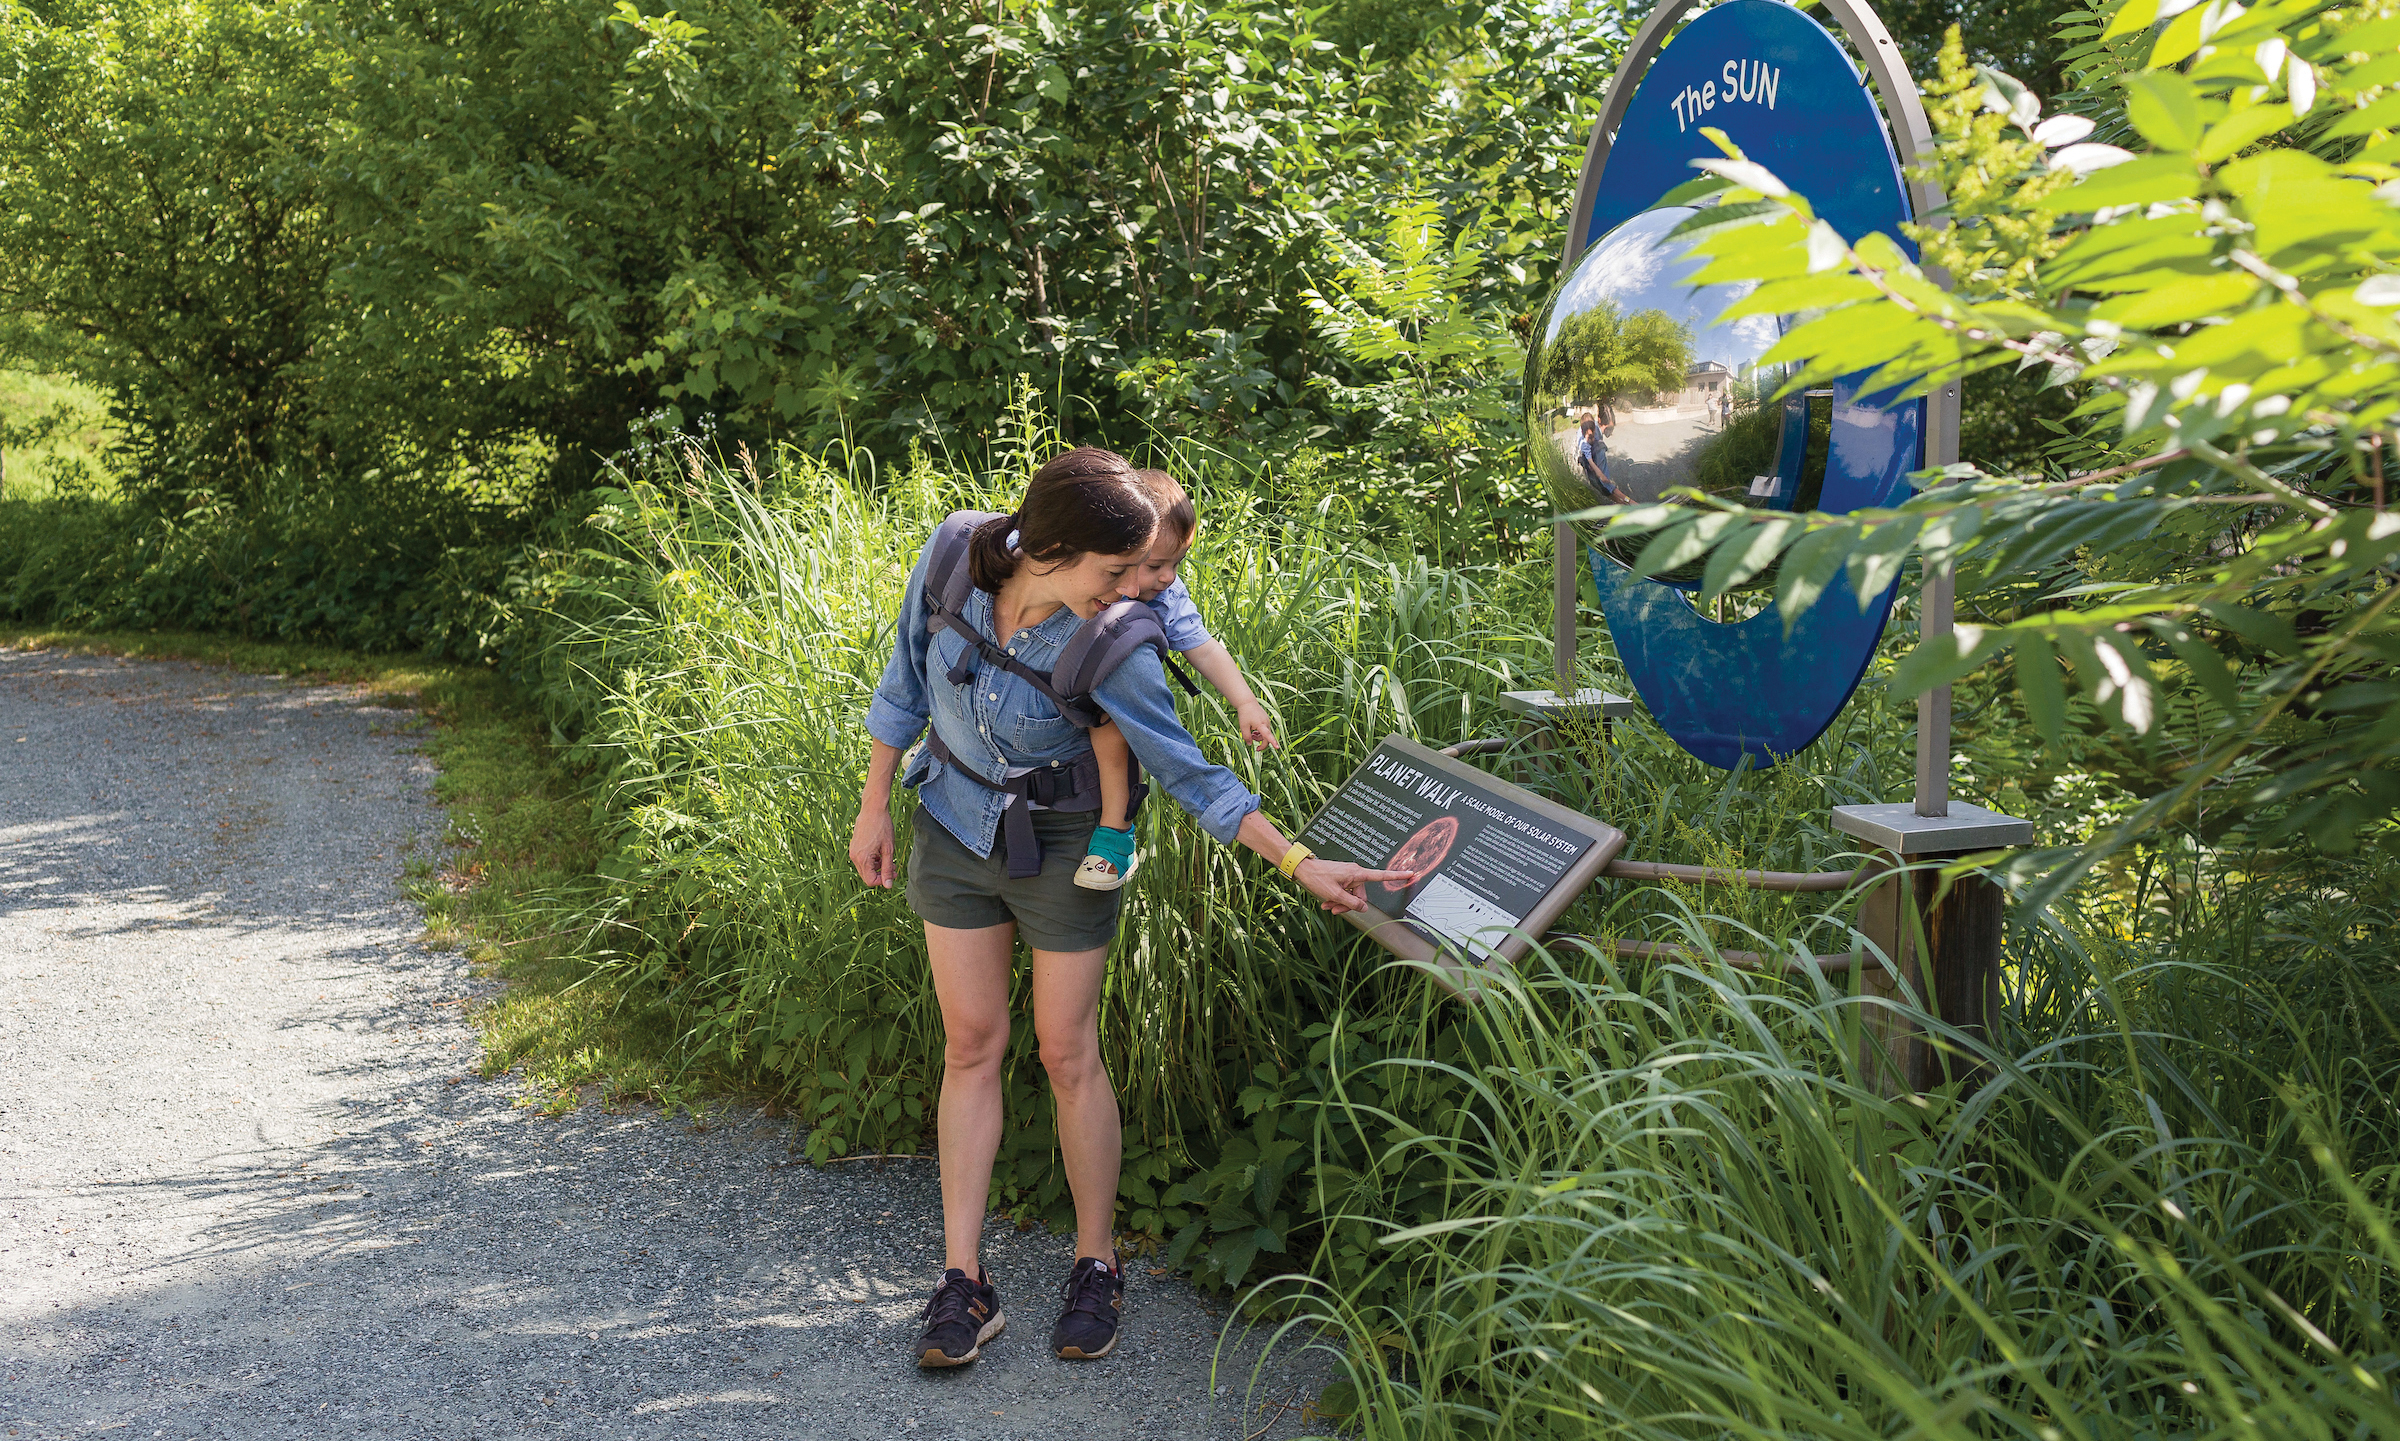 Learn more about Outdoor Discovery and Nature Trails